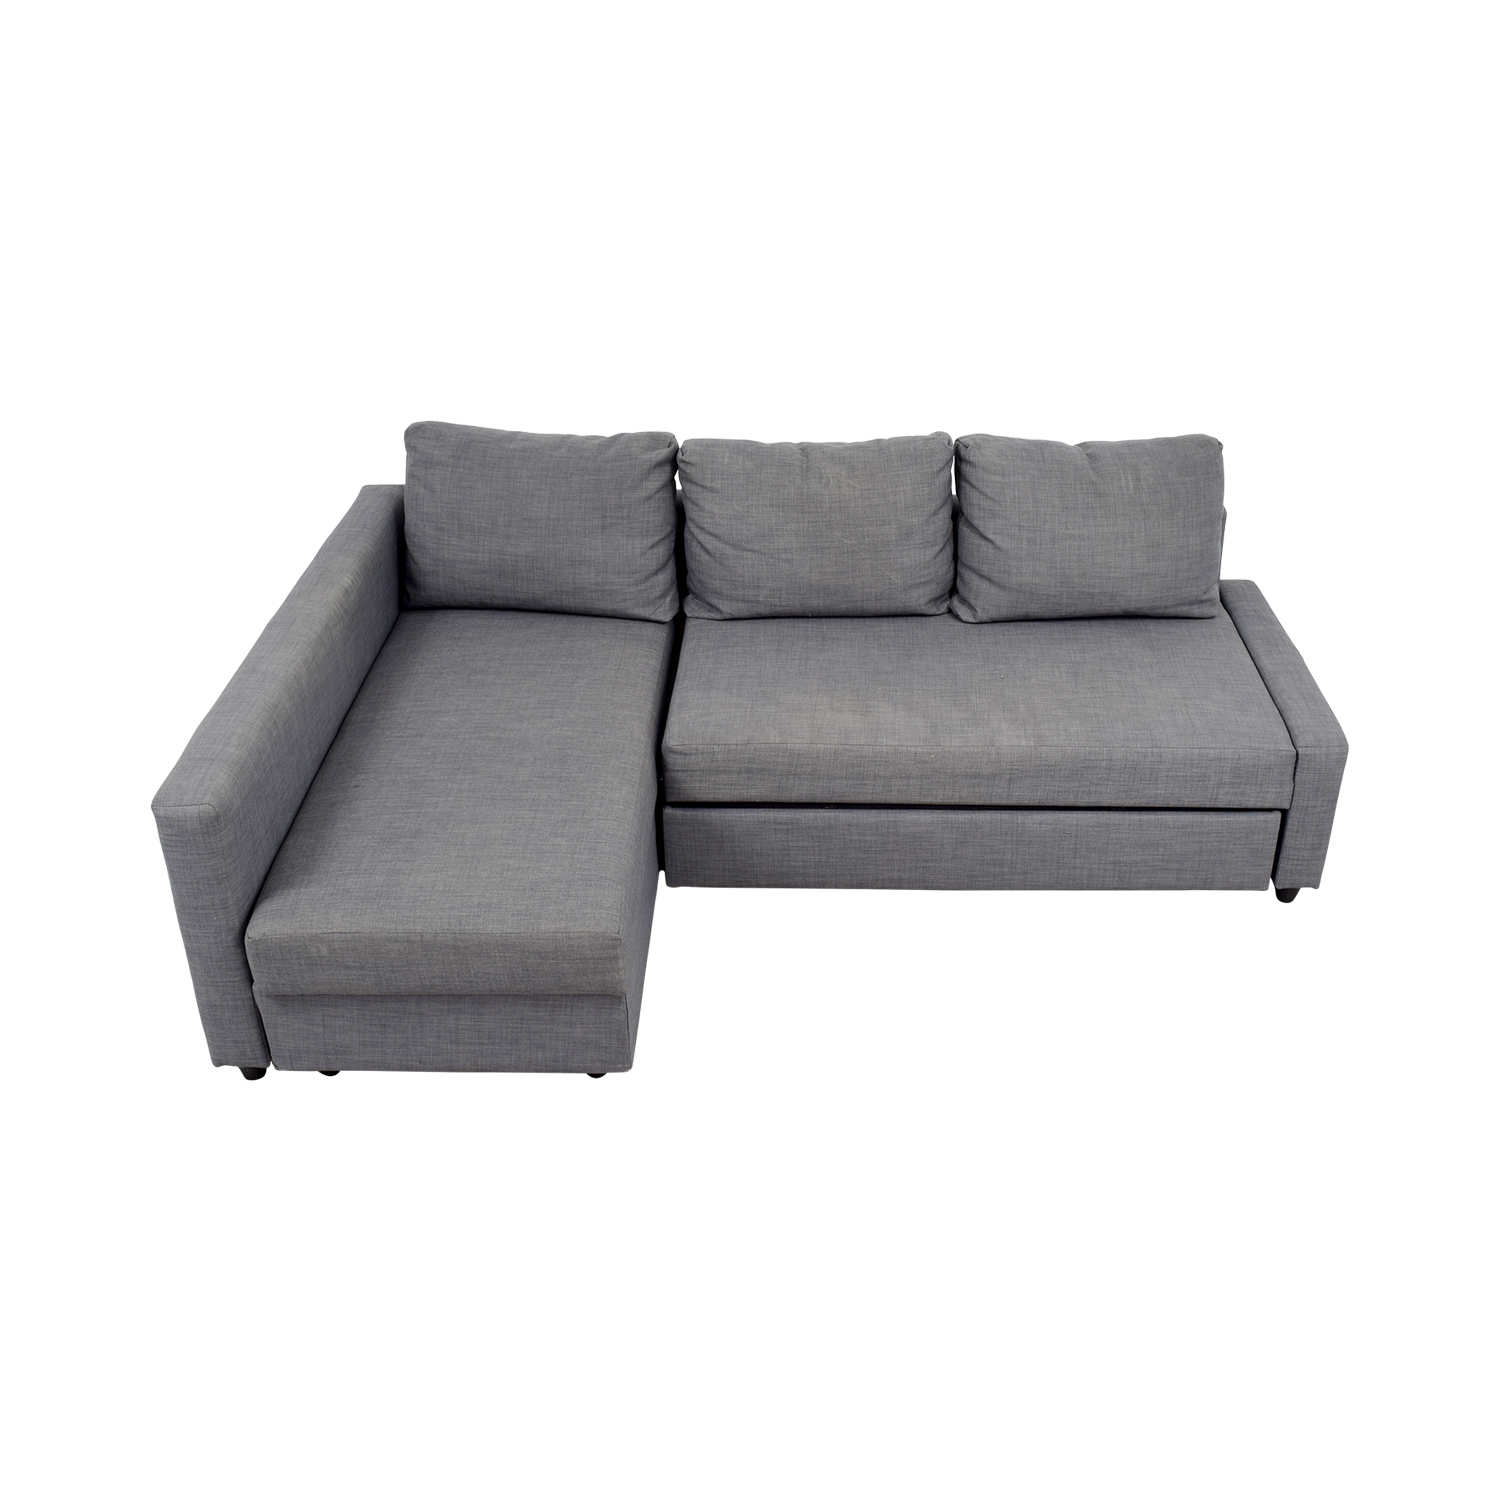 IKEA IKEA Friheten Sofa for sale